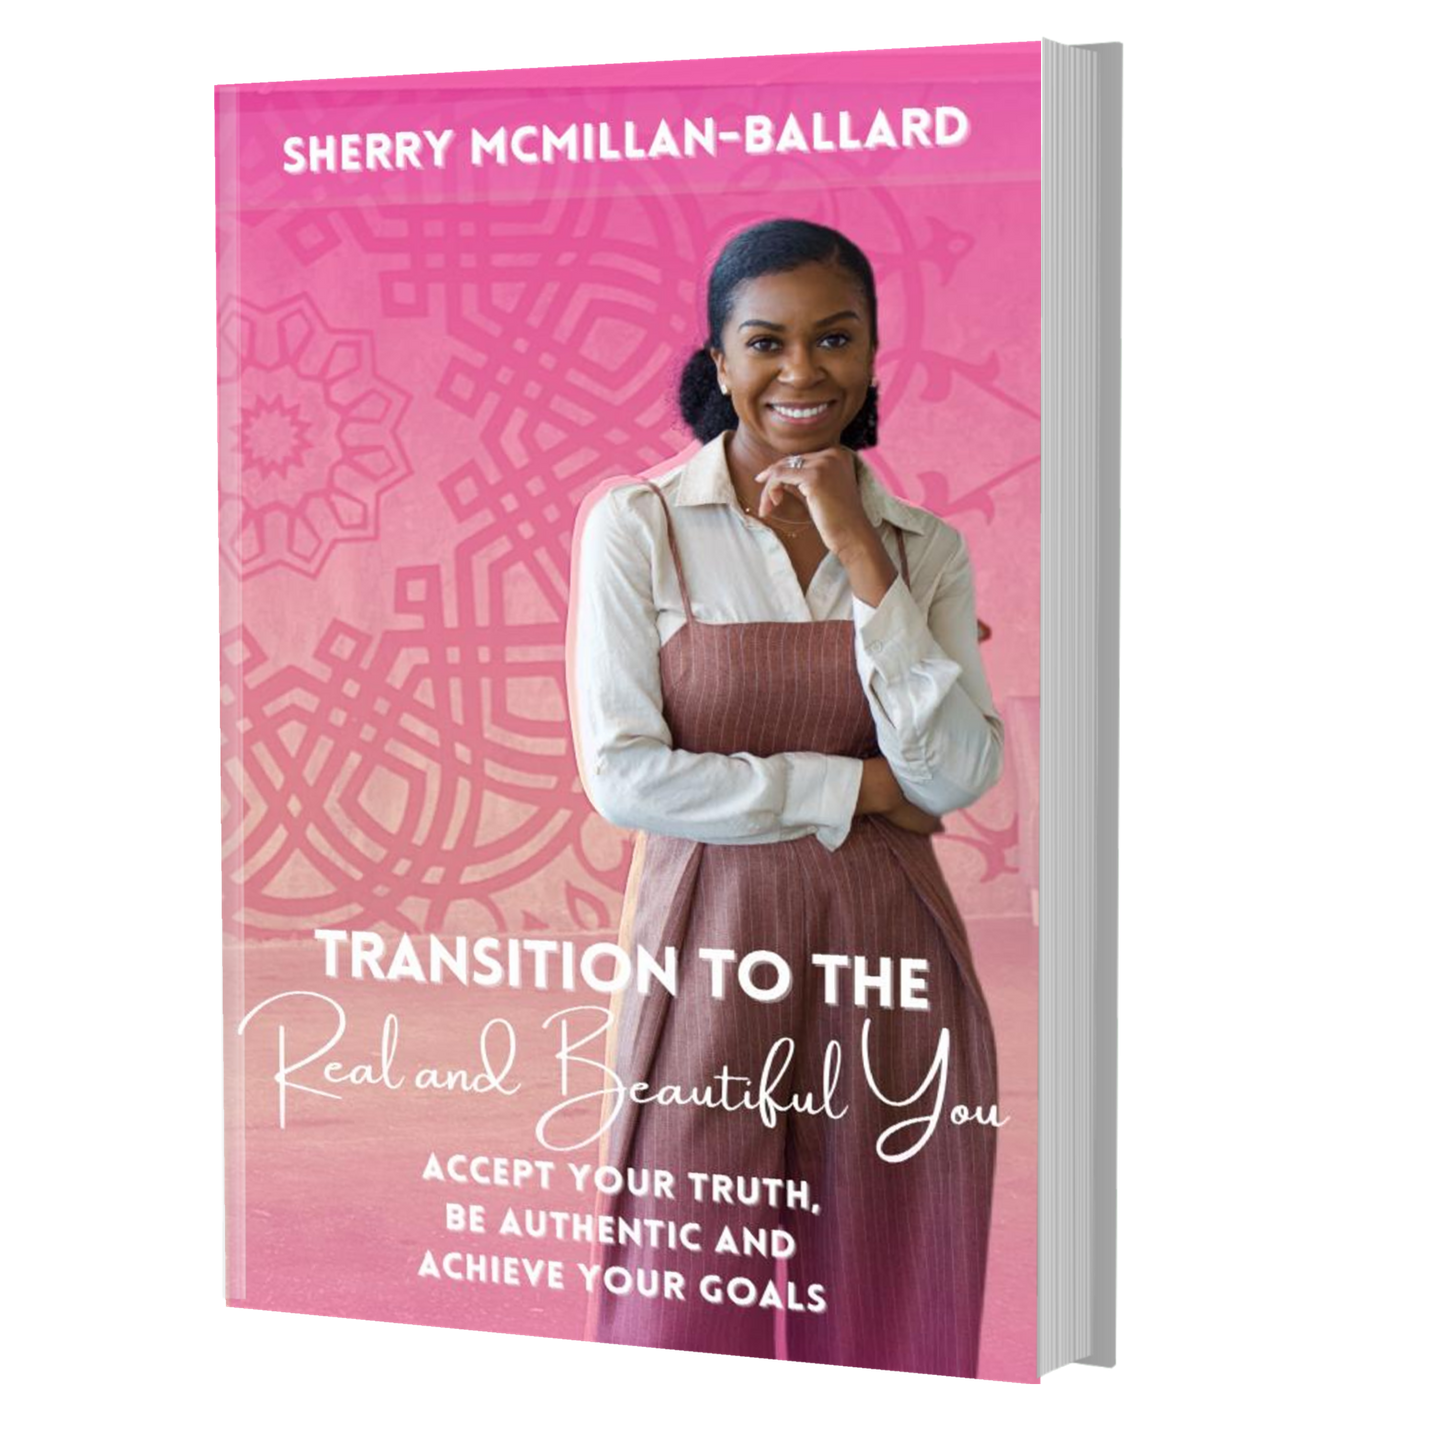 Transition to the Real and Beautiful You book cover